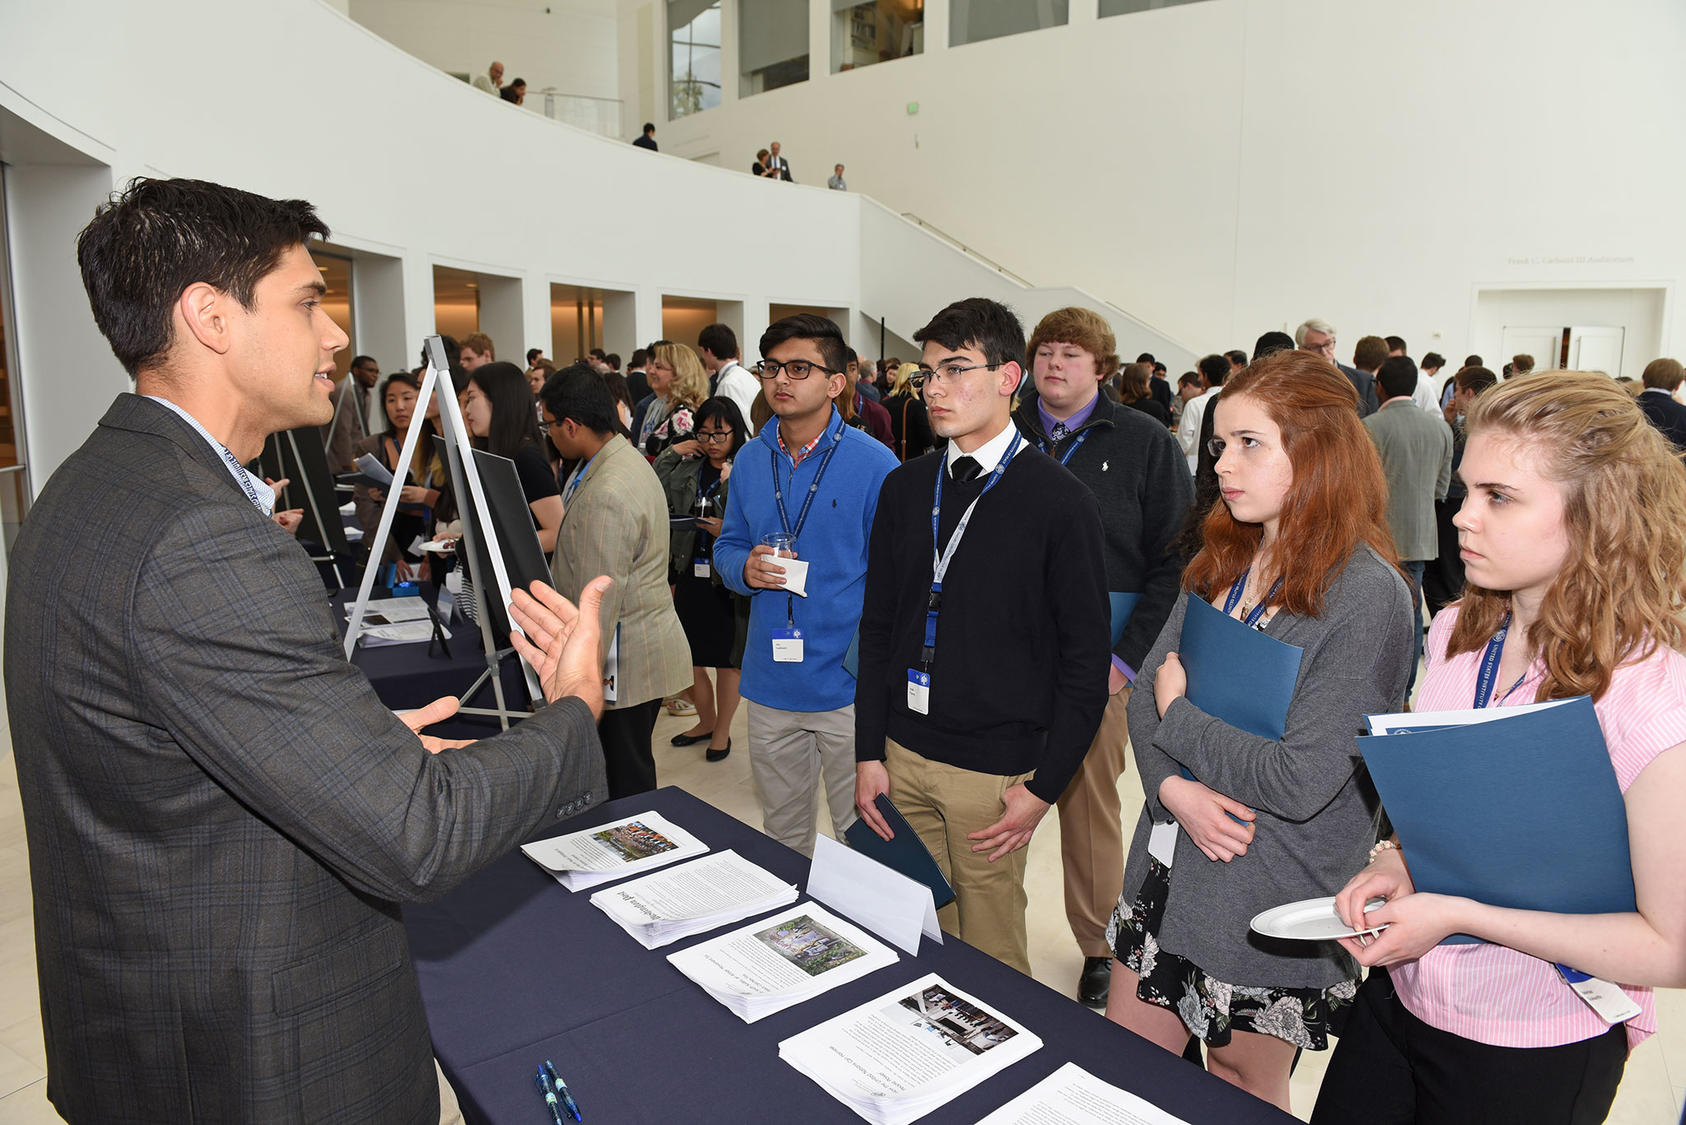 USIP staff engage with an audience of students, teachers, and parents from 25 U.S. states at the 2018 national competition reception for Academic WorldQuest, a program of the World Affairs Councils of America, which USIP sponsors.